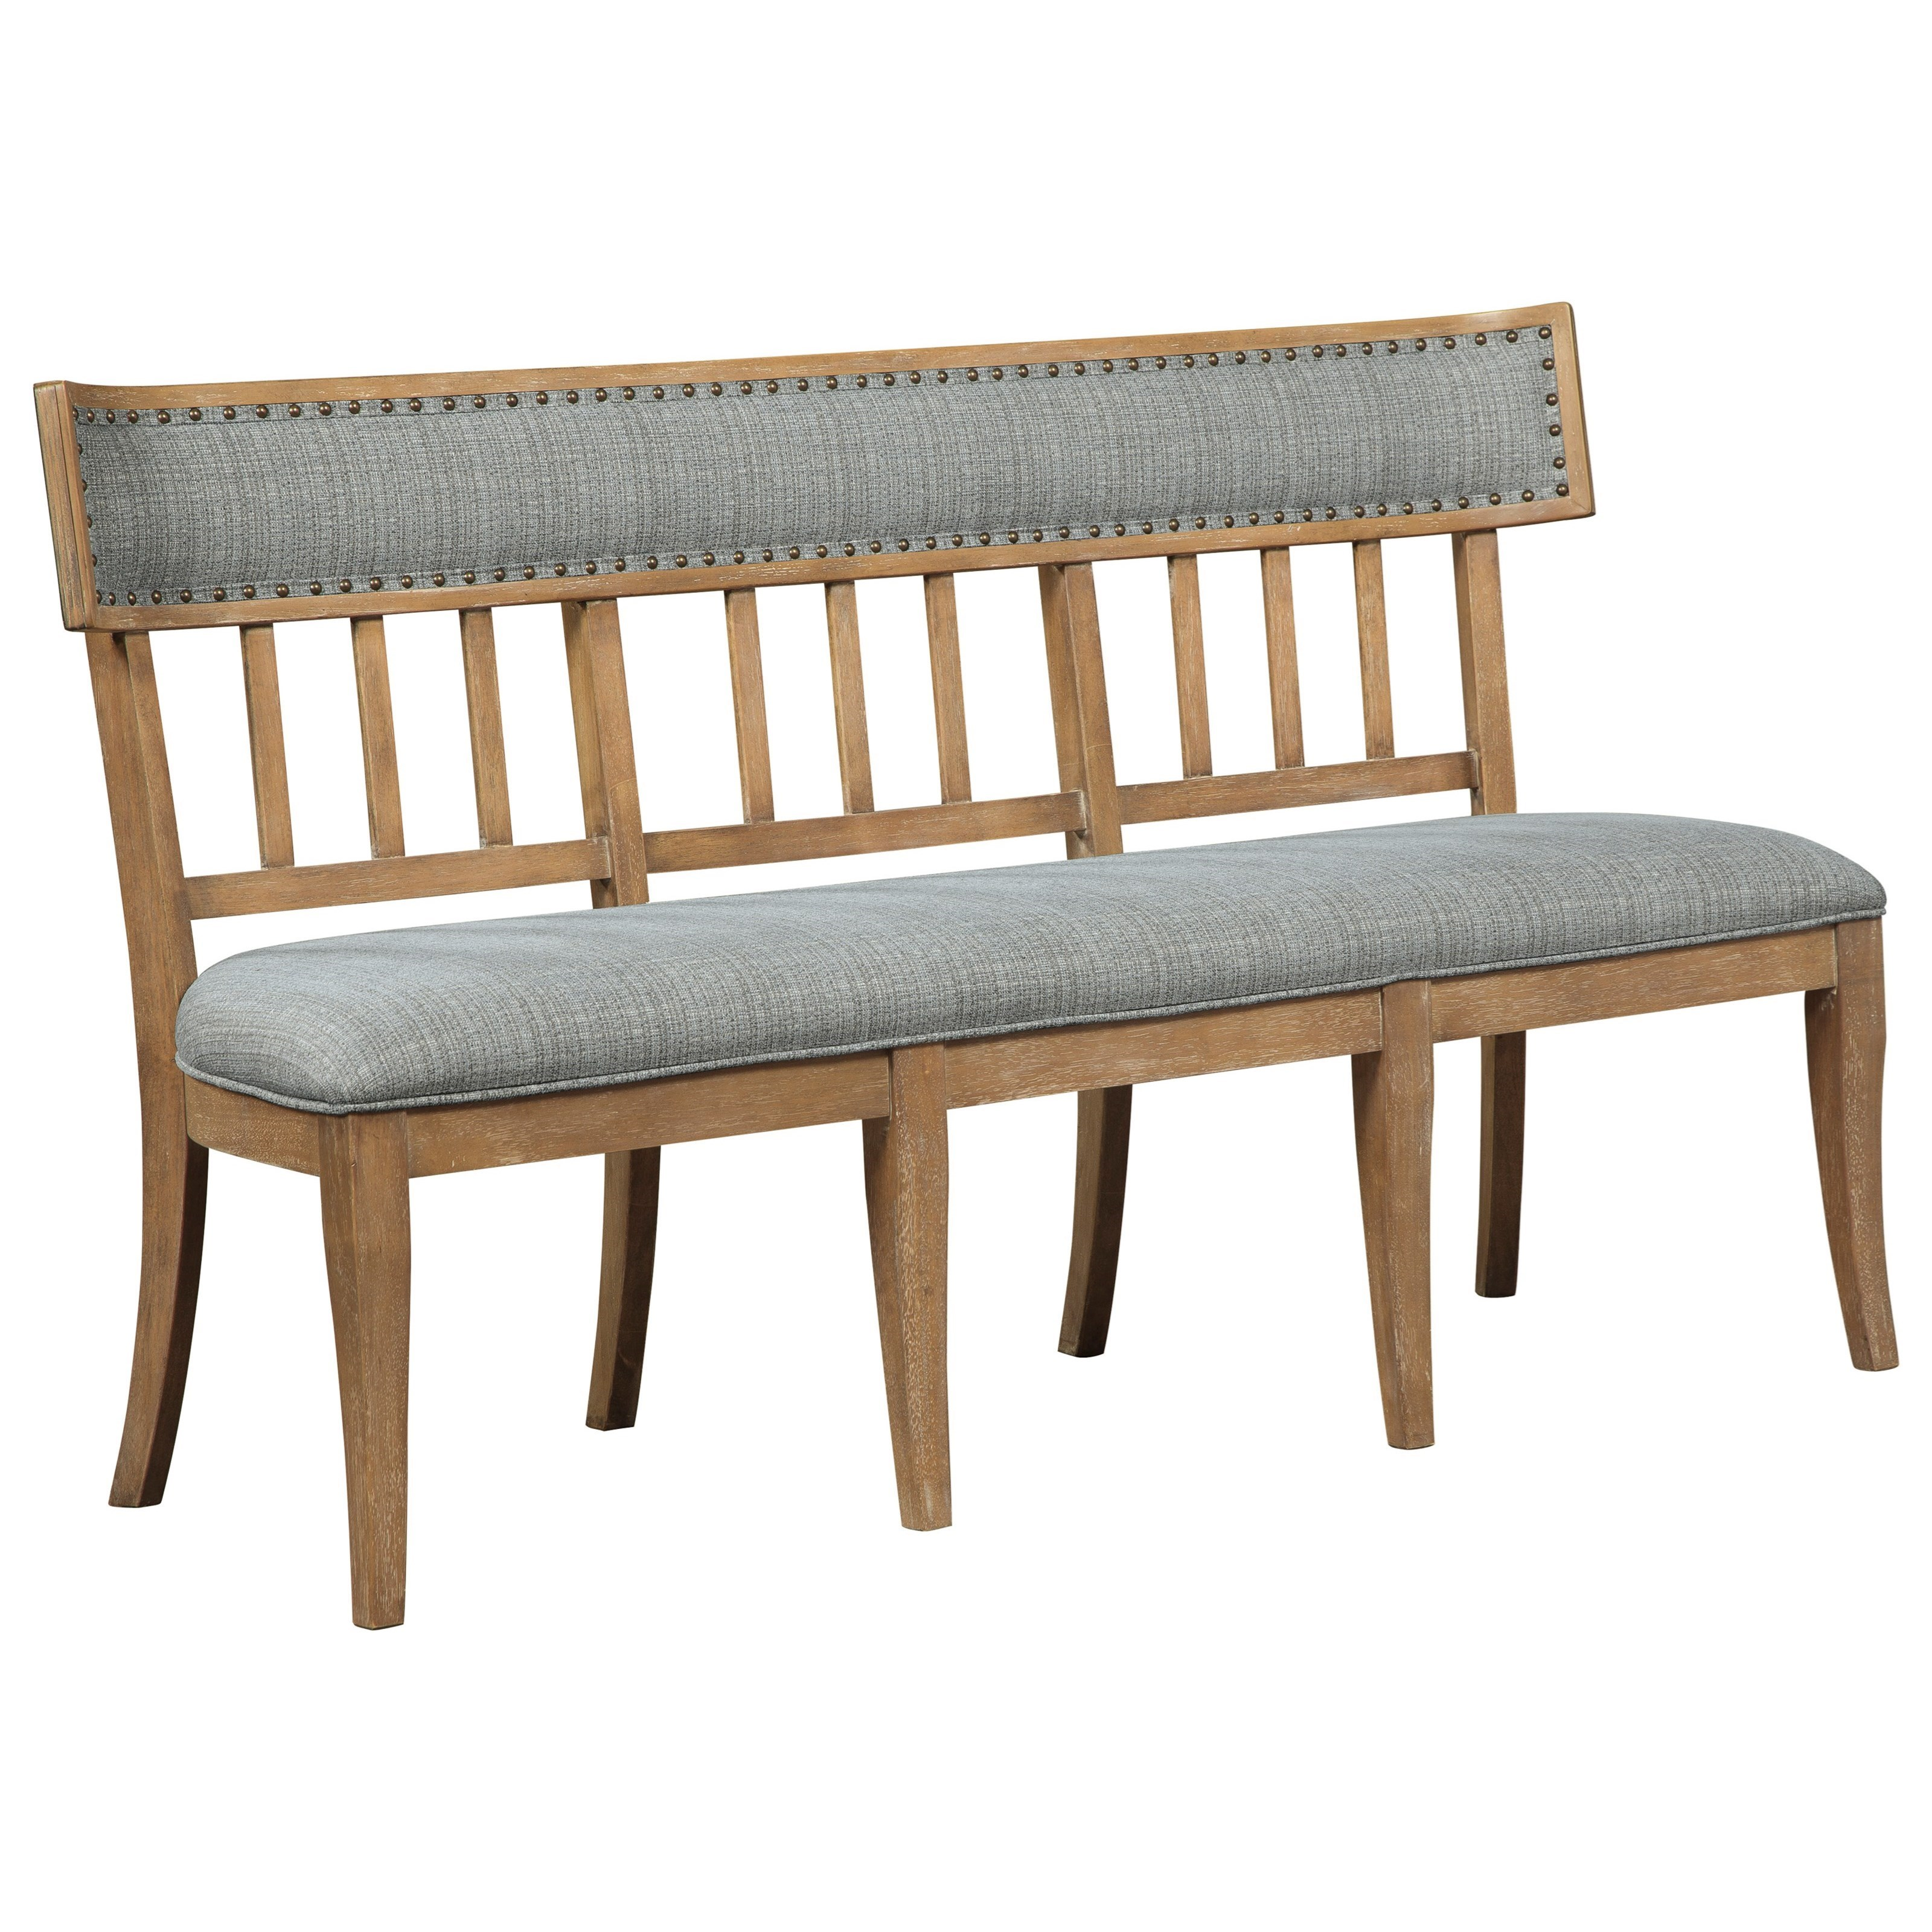 upholstered dining bench black millennium ollesburgupholstered bench ollesburg d72508 upholstered dining bench with nail head